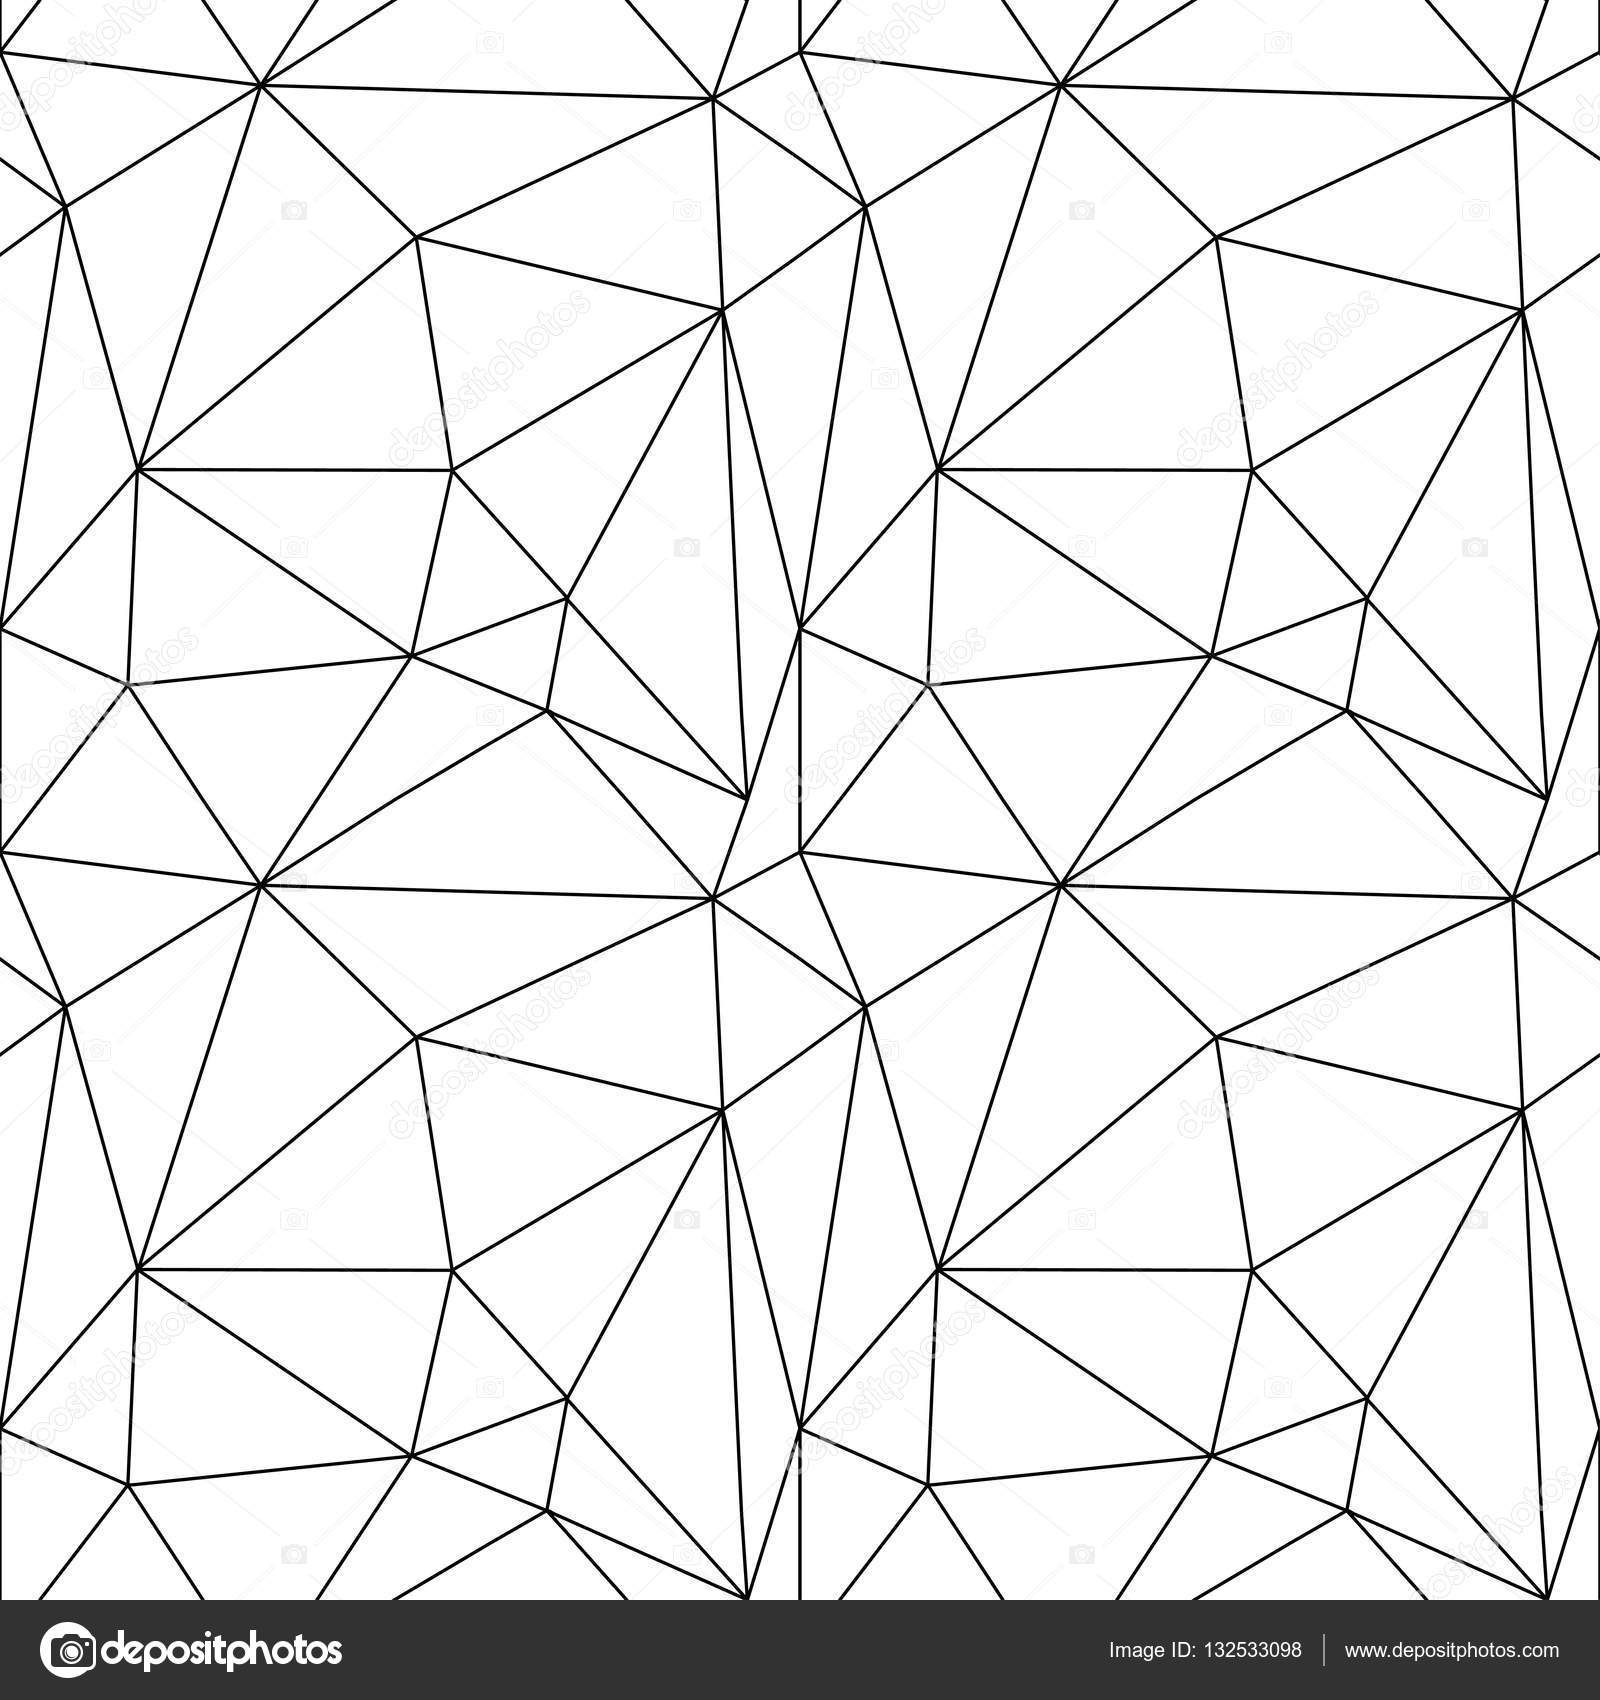 abstract geometric black and white seamless pattern of